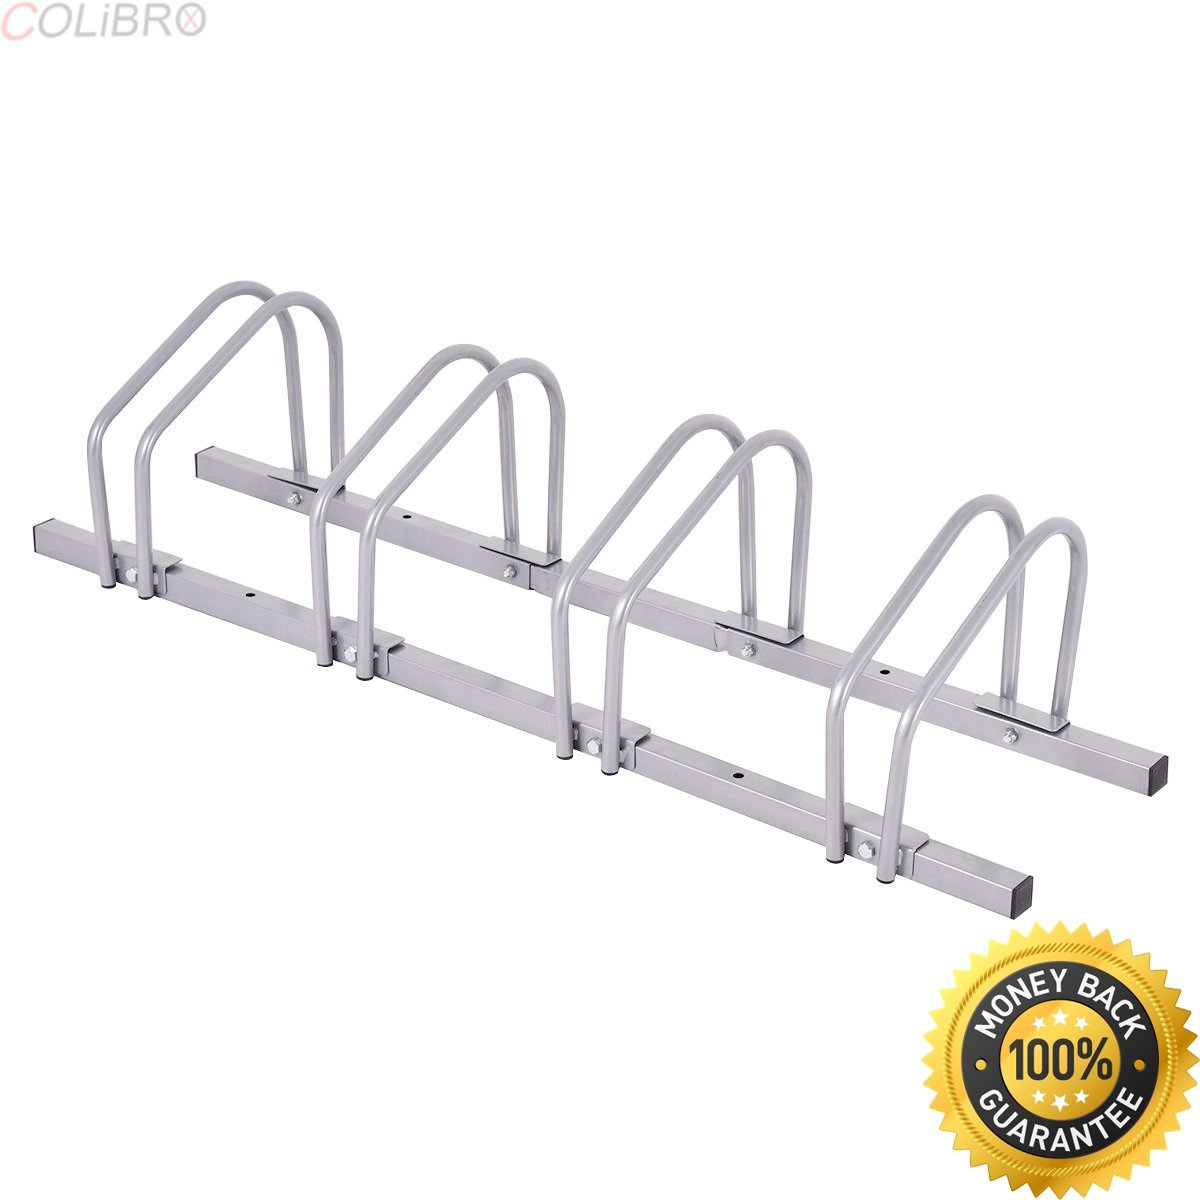 Parking Garage Bike Rack Cheap Garage Floor Bike Rack Find Garage Floor Bike Rack Deals On